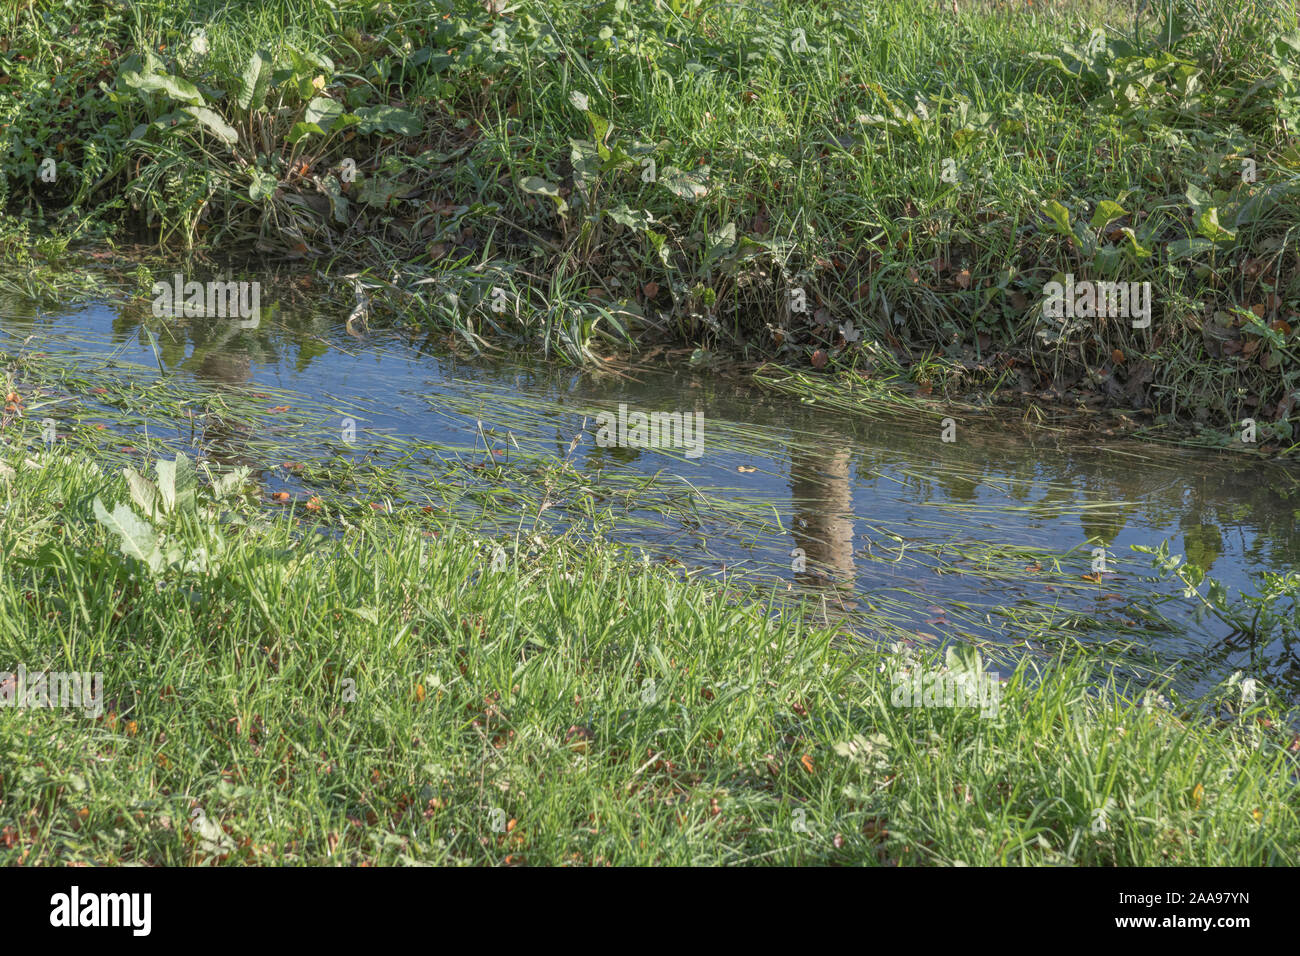 Field drainage ditch in sunshine, but flooded by winter rains and full of aquatic weeds and grasses. Stock Photo